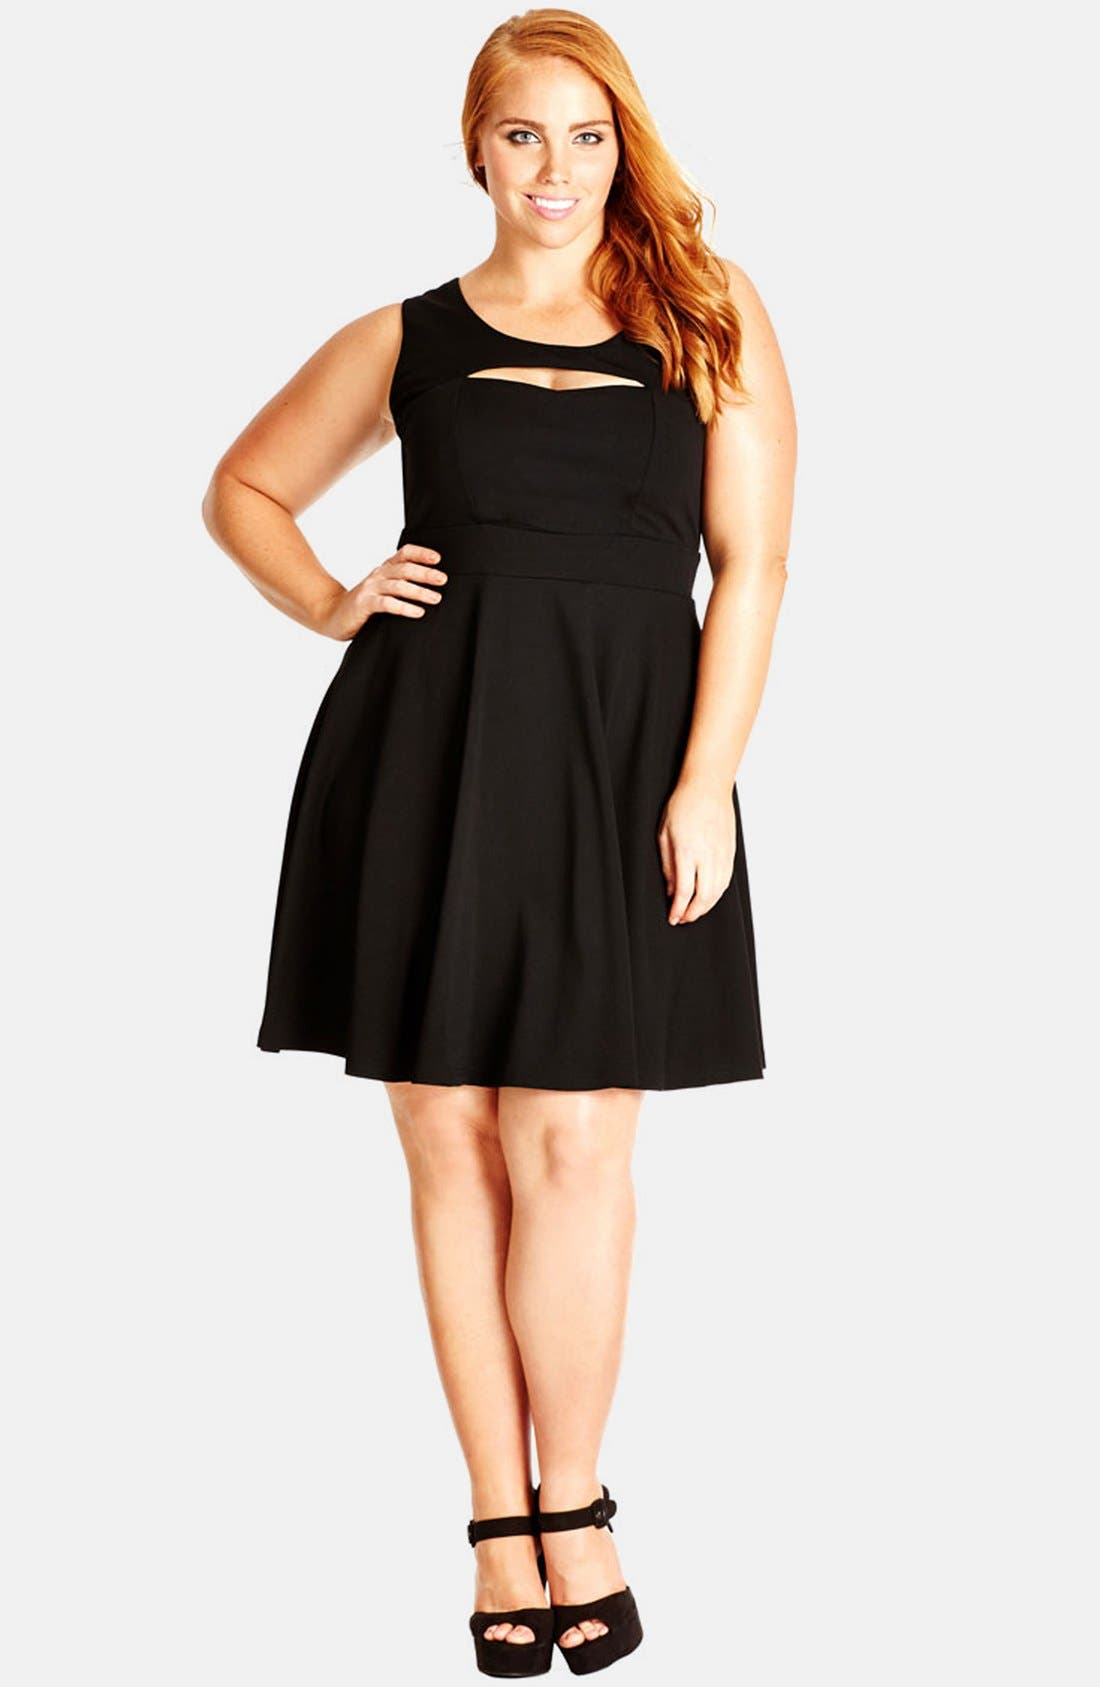 Alternate Image 1 Selected - City Chic 'Peek-a-Boo' Fit & Flare Dress (Plus Size)